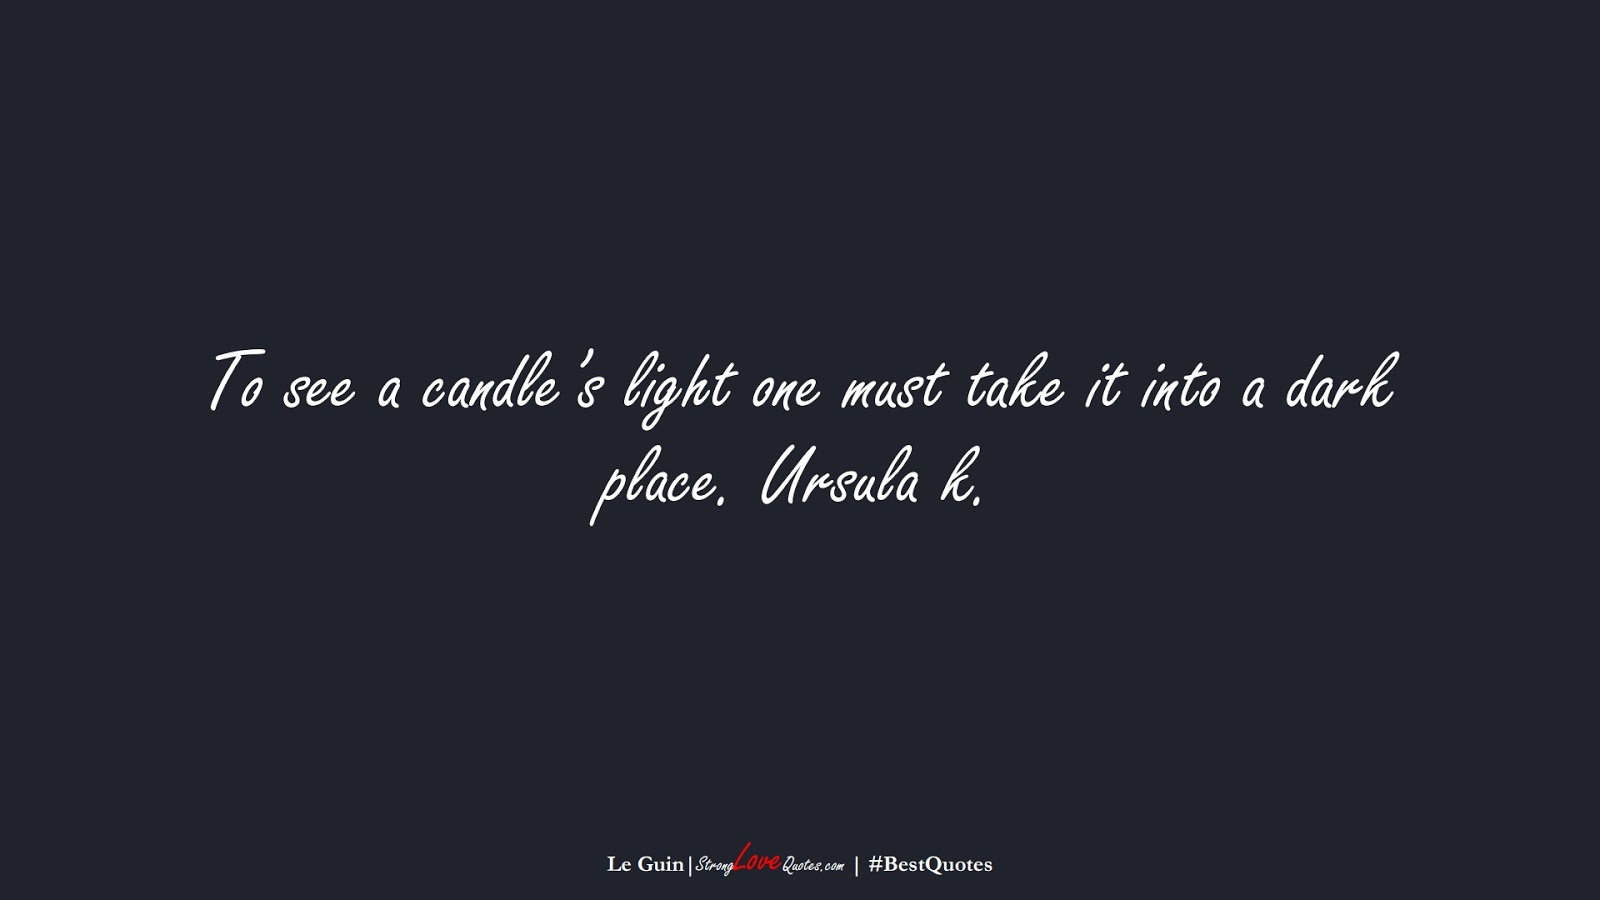 To see a candle's light one must take it into a dark place. Ursula k. (Le Guin);  #BestQuotes